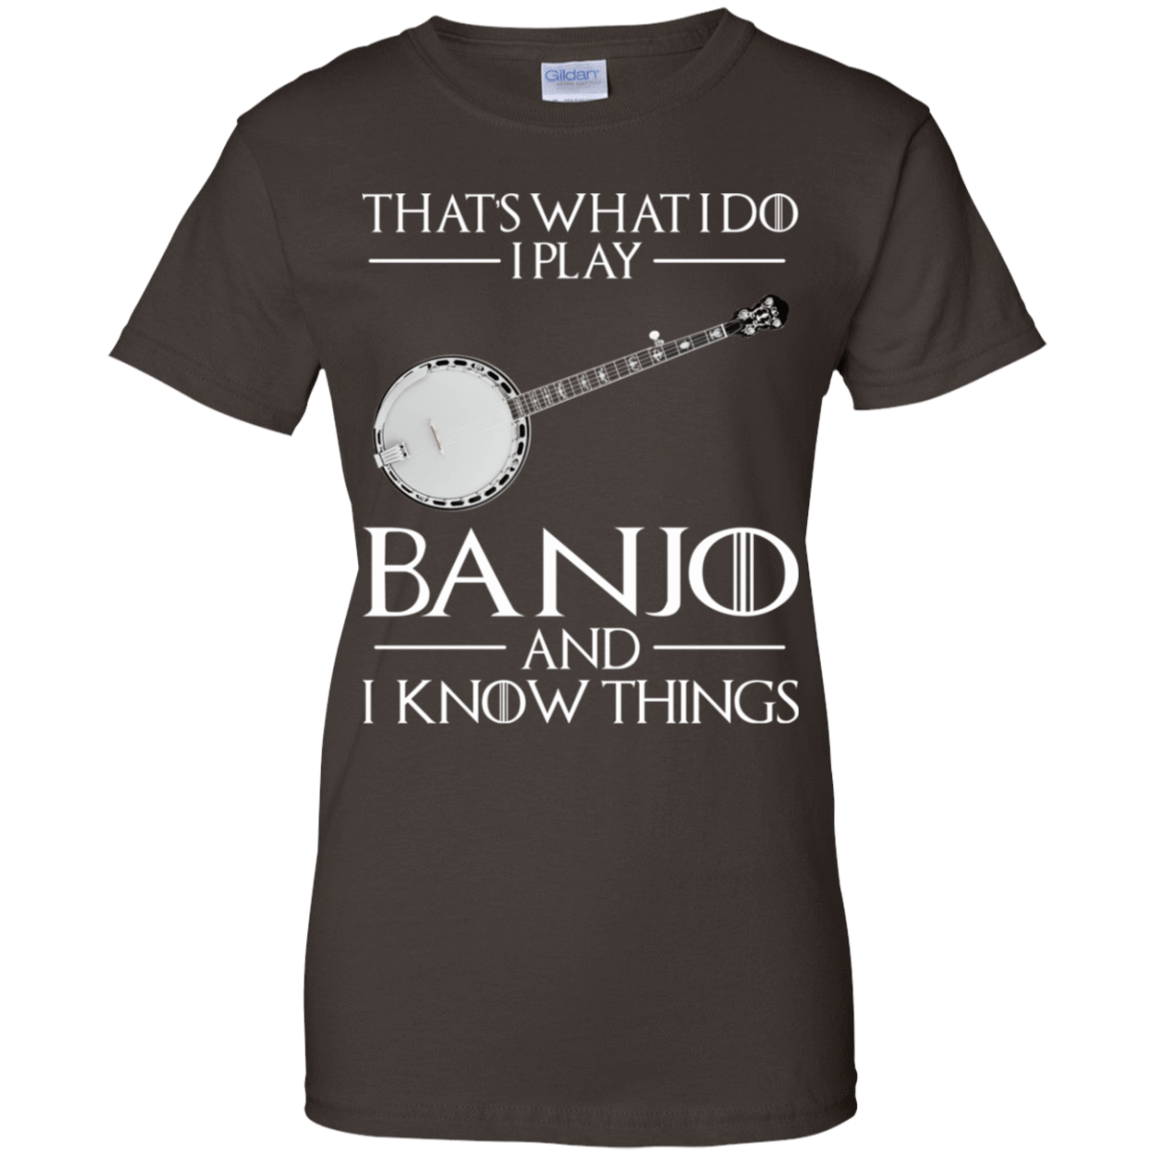 That's What I Do I Play Banjo And I Know Things 939-9251-73428608-44702 - Tee Ript